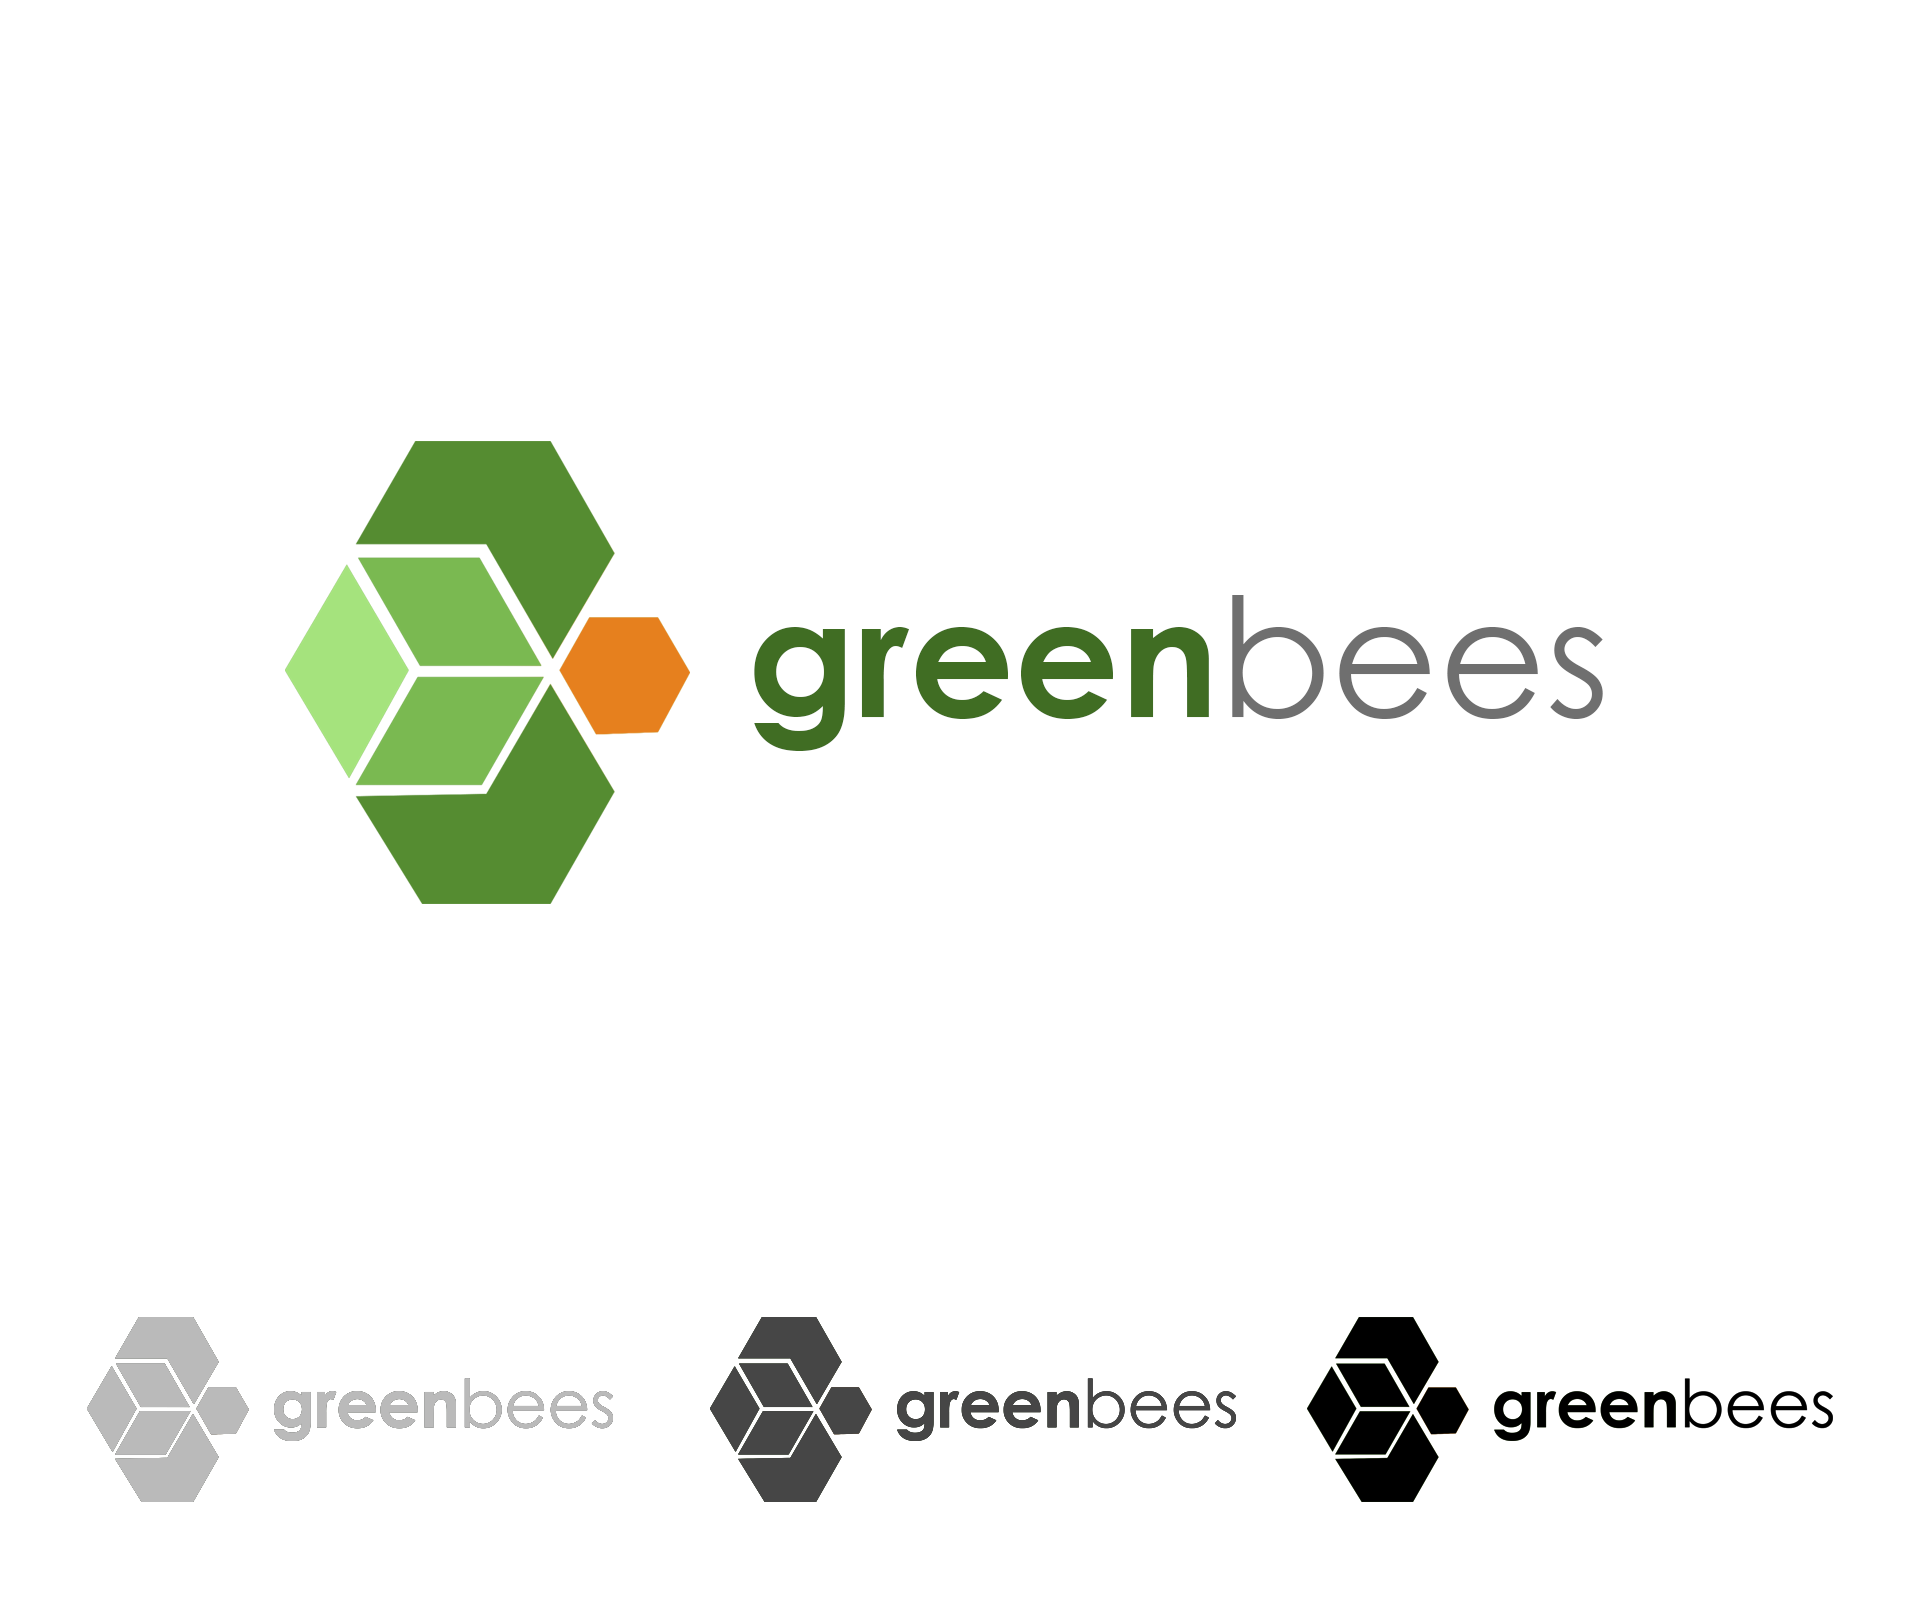 Logo Design by Private User - Entry No. 21 in the Logo Design Contest Greenbees Logo Design.